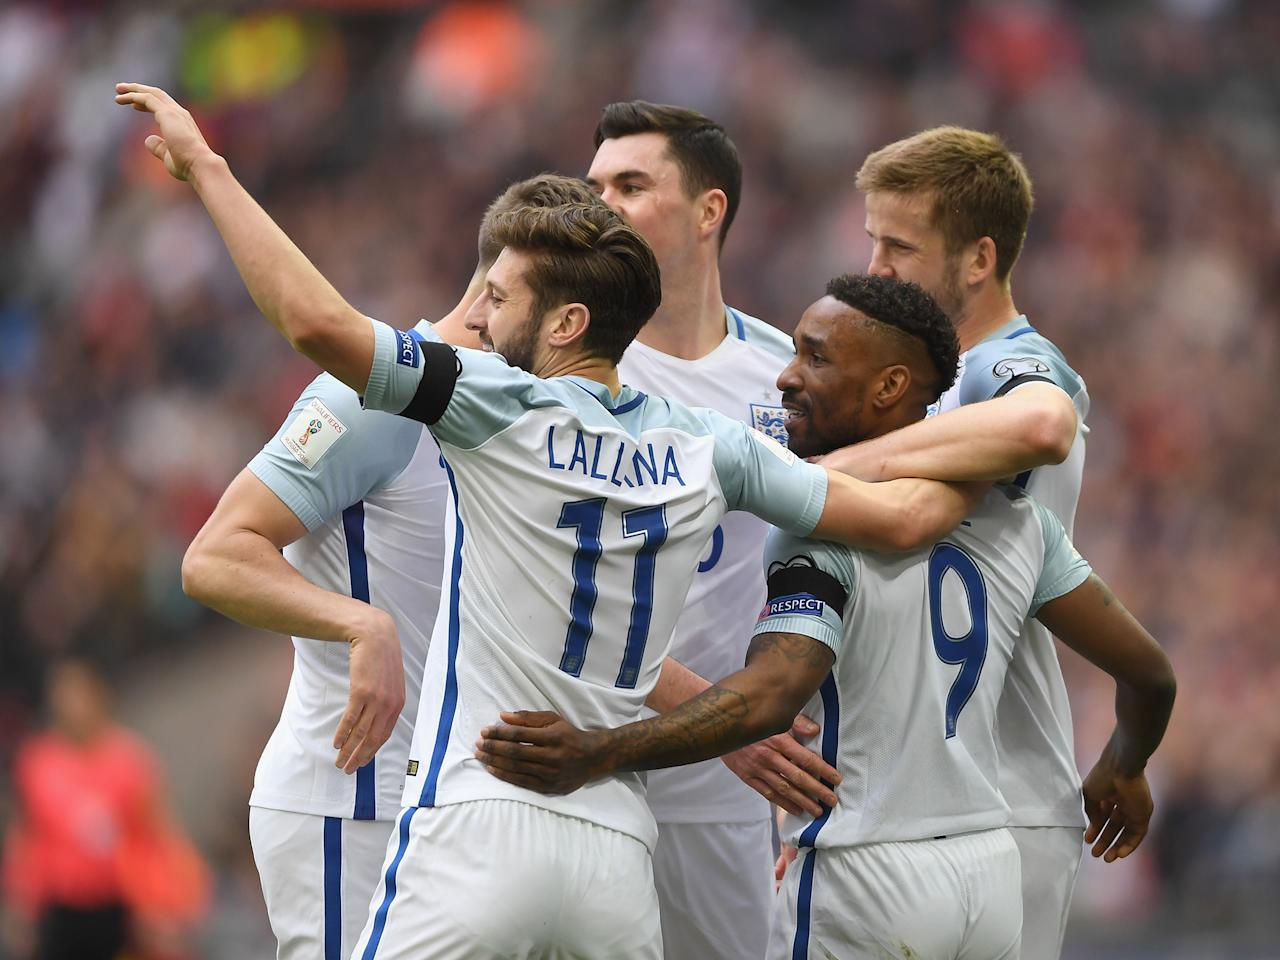 Adam Lallana opens up on watching Jermain Defoe as a fan and then playing with him for England 16 years later